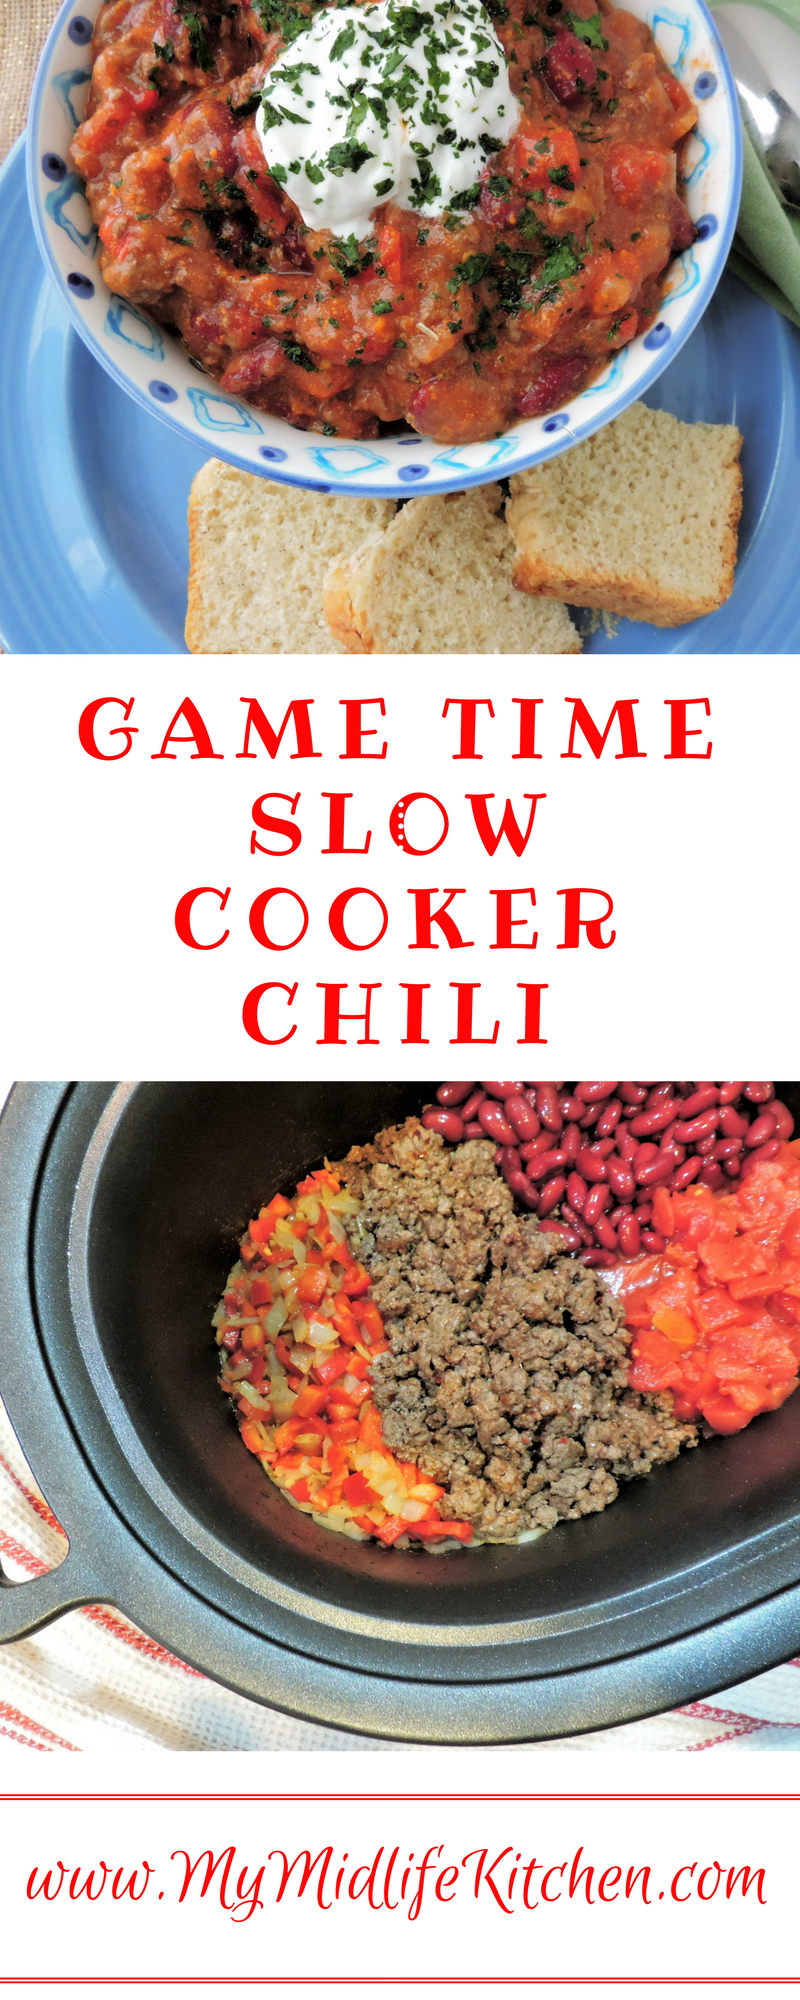 Game Time Slow Cooker Chili